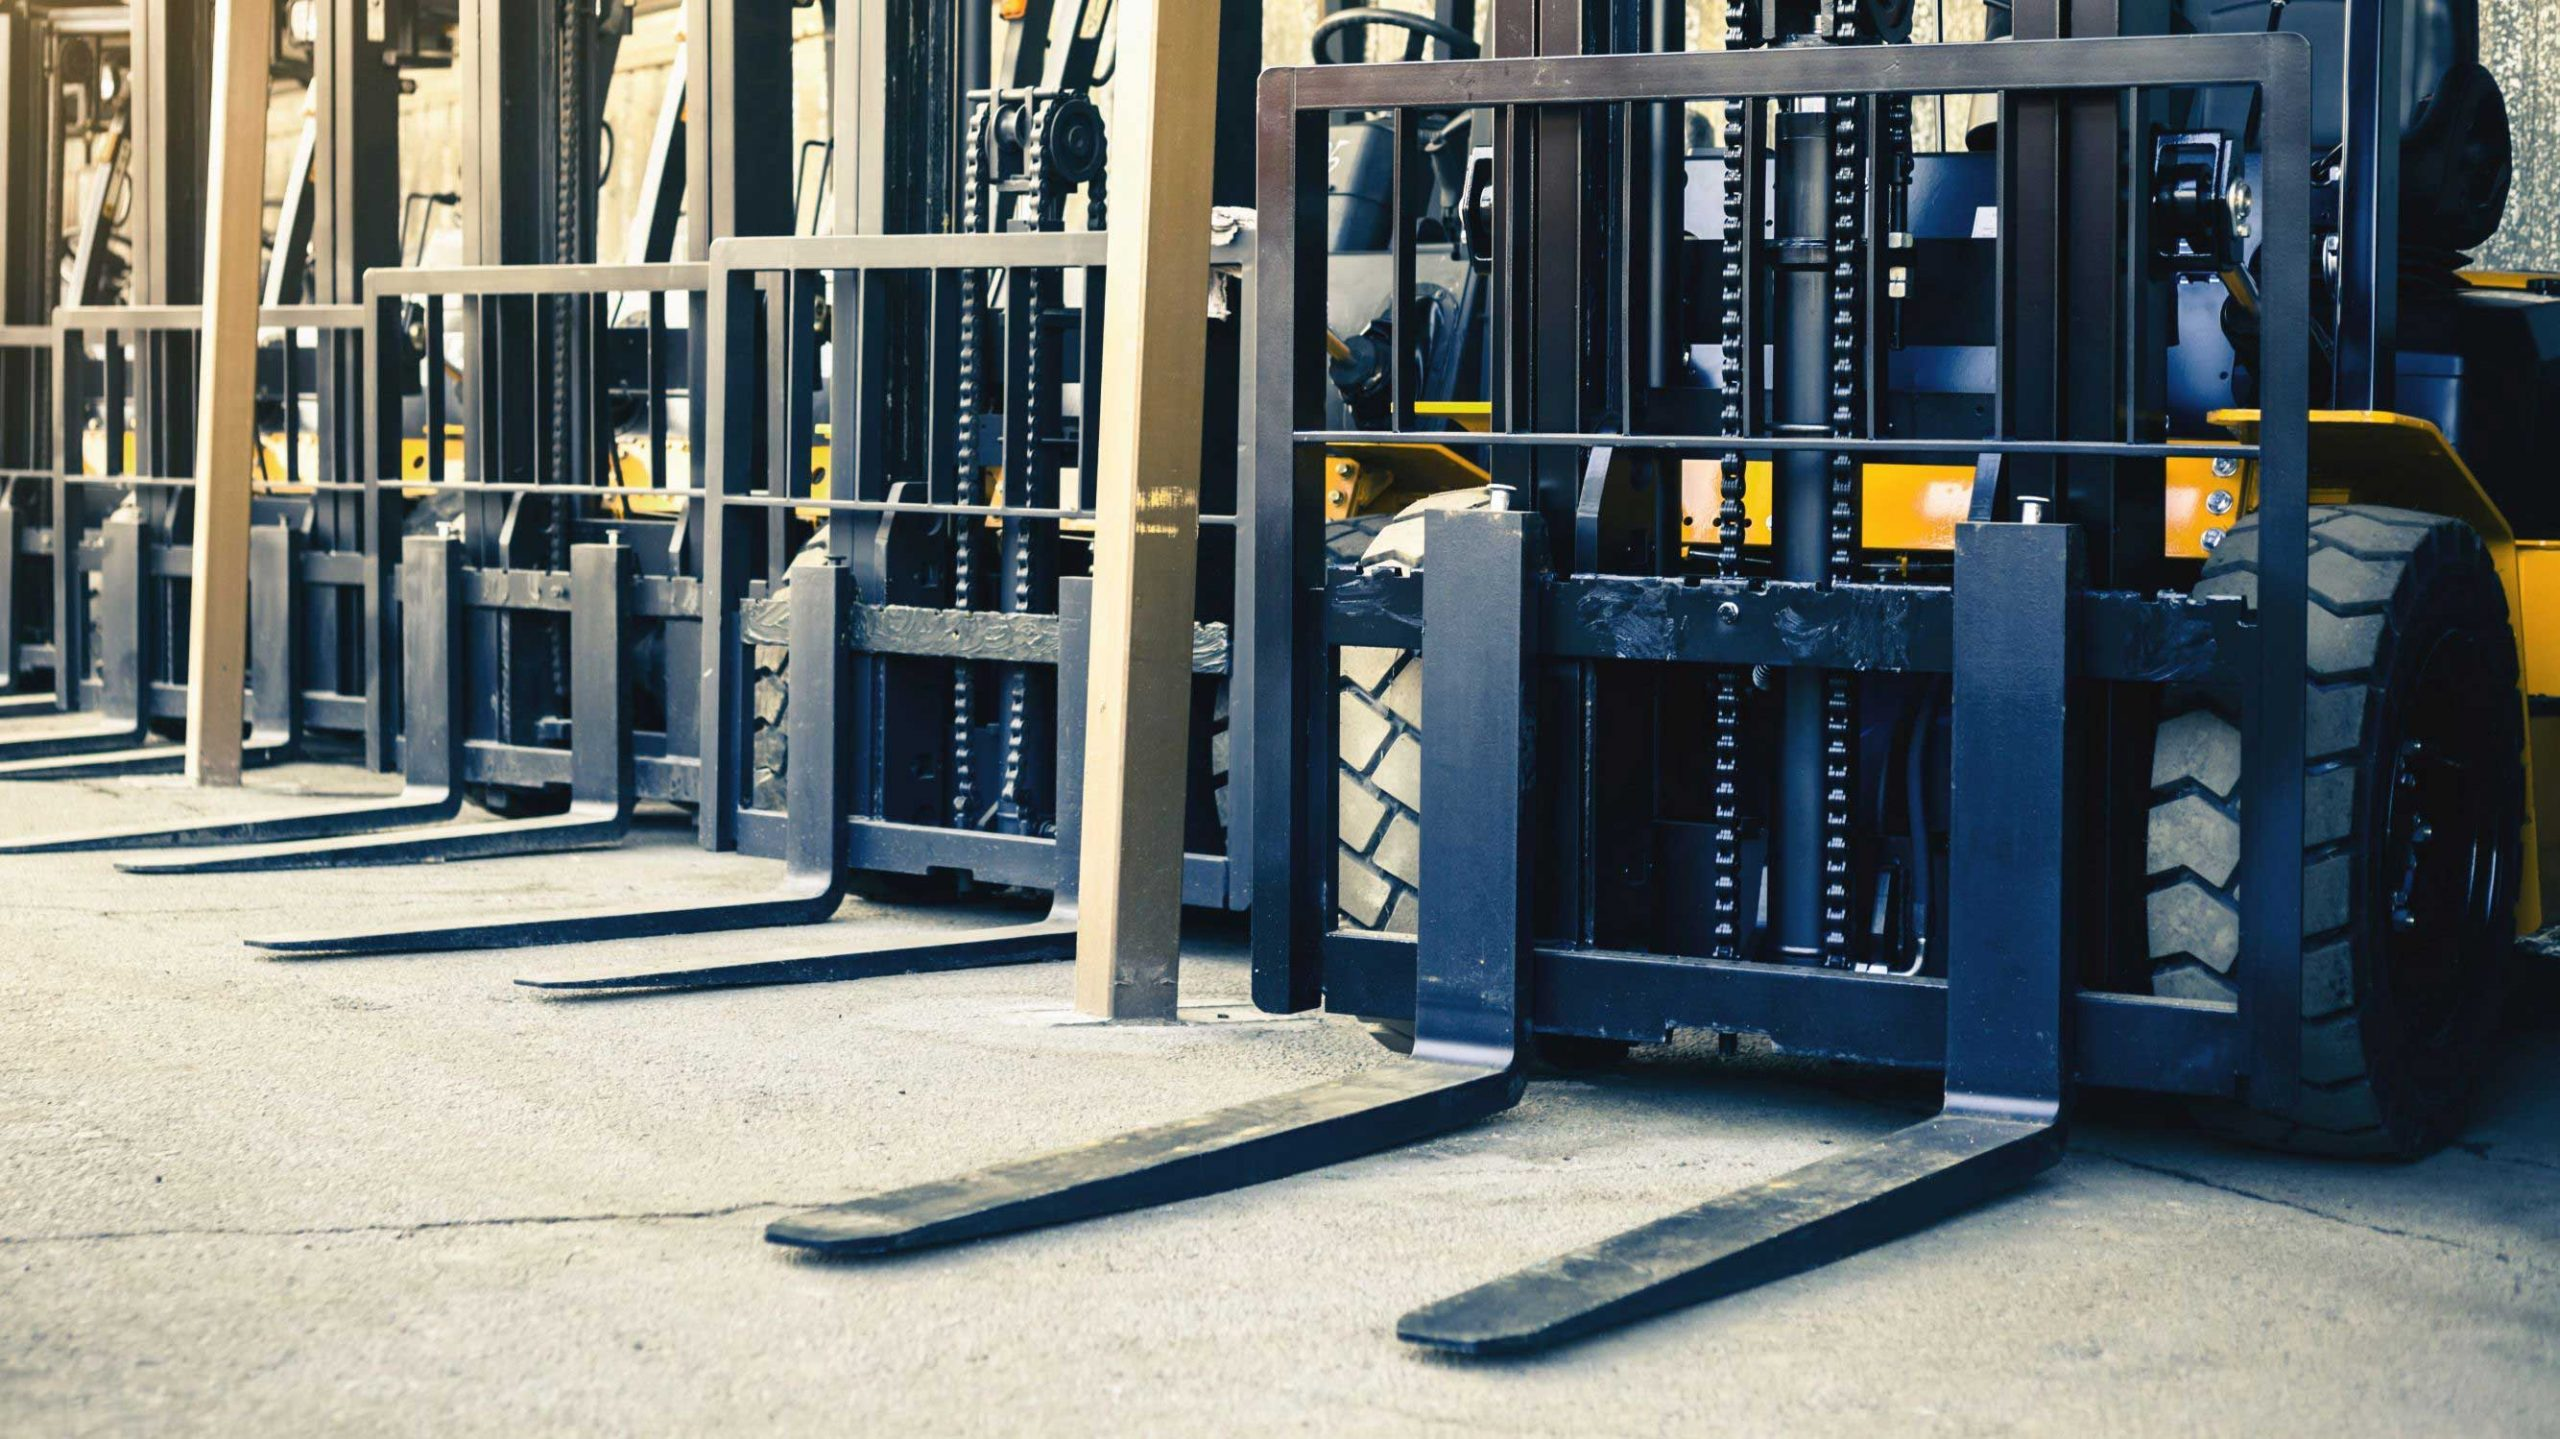 New or Used Forklift: Which is the Better Investment?